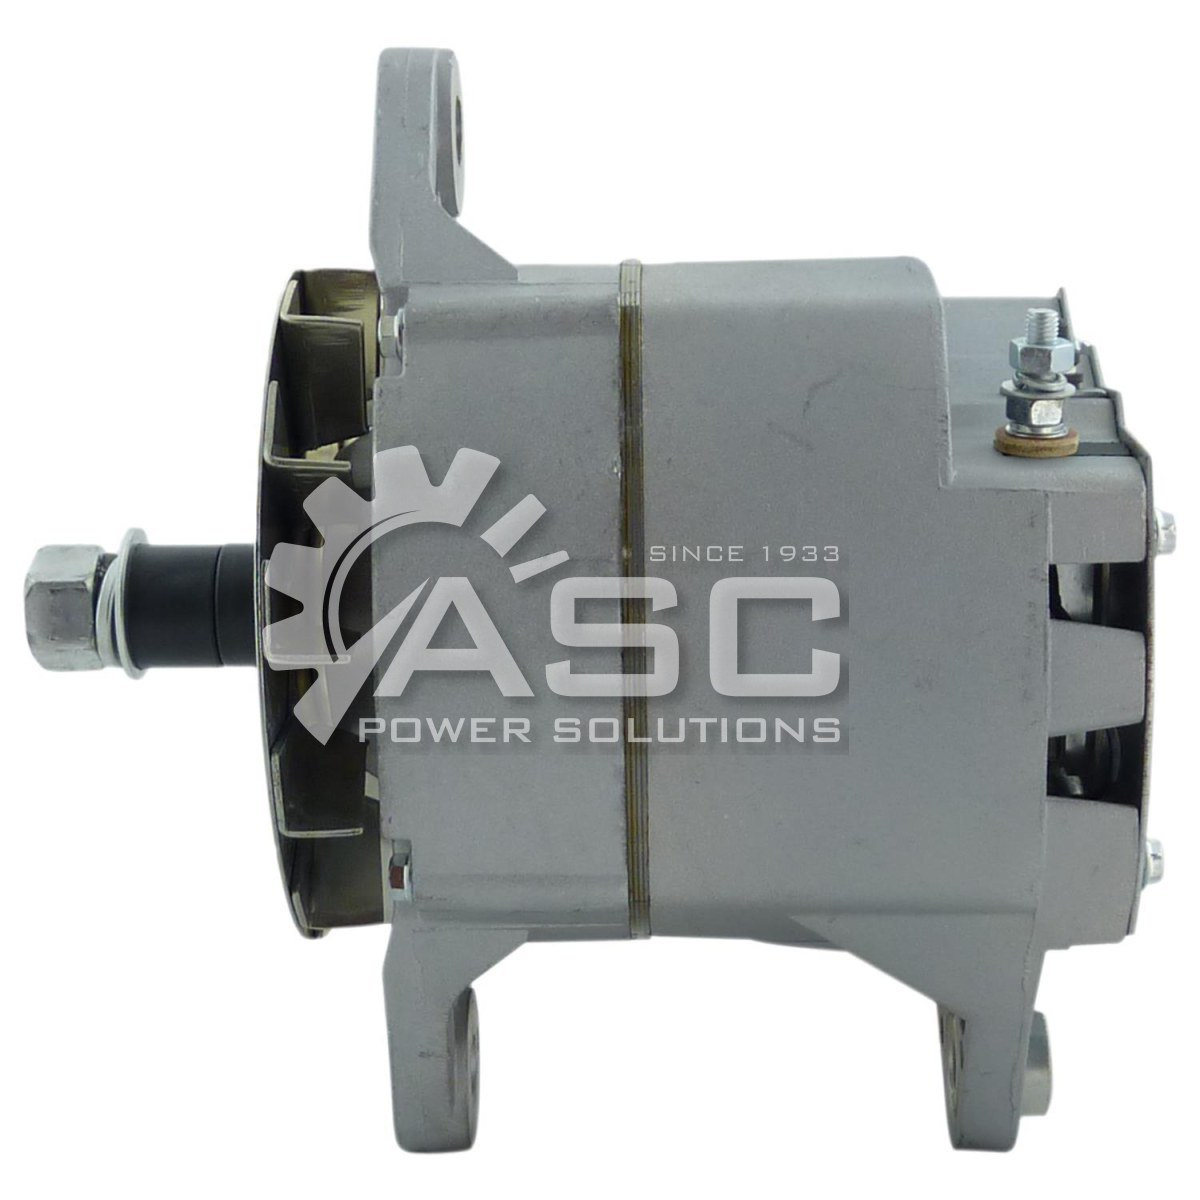 A121764_ASC, Alternator, 24V, 45 Amp, IR, EF, Bi, V1, 57MM, Delco, 20SI, Reman